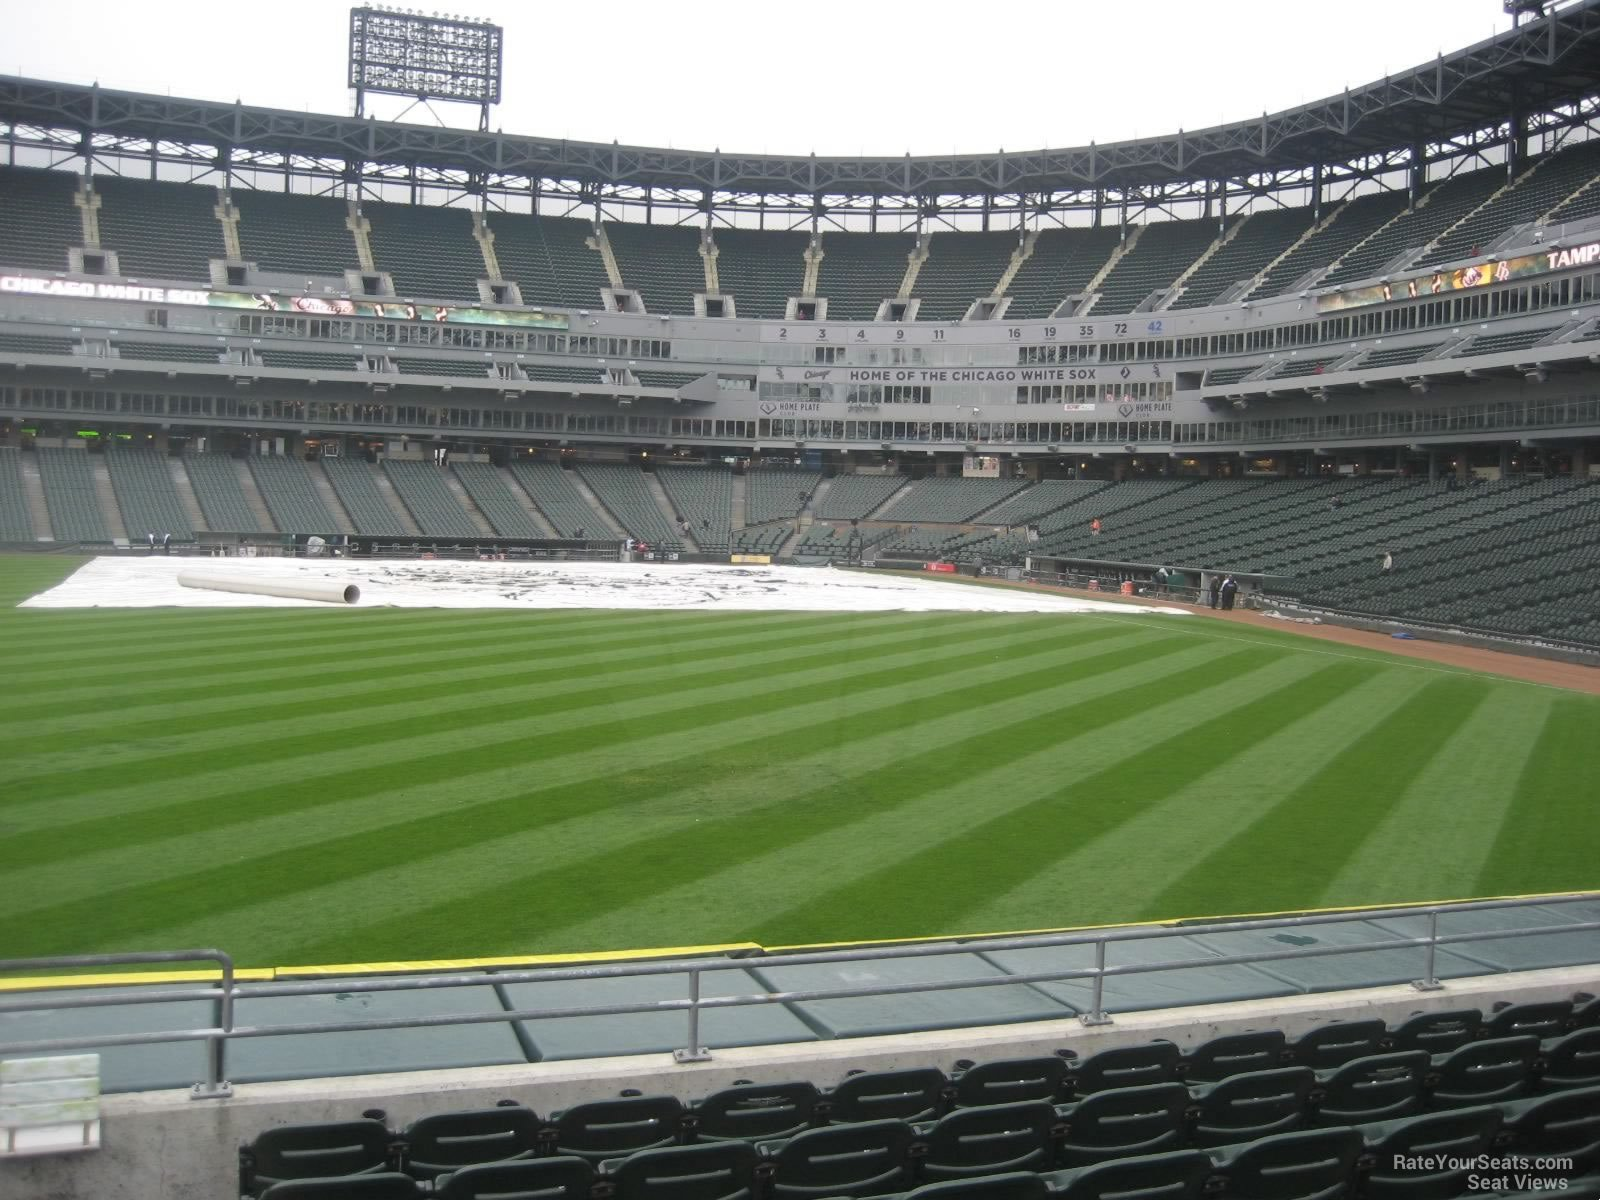 View From Section 159 Row 7 at US Cellular Field